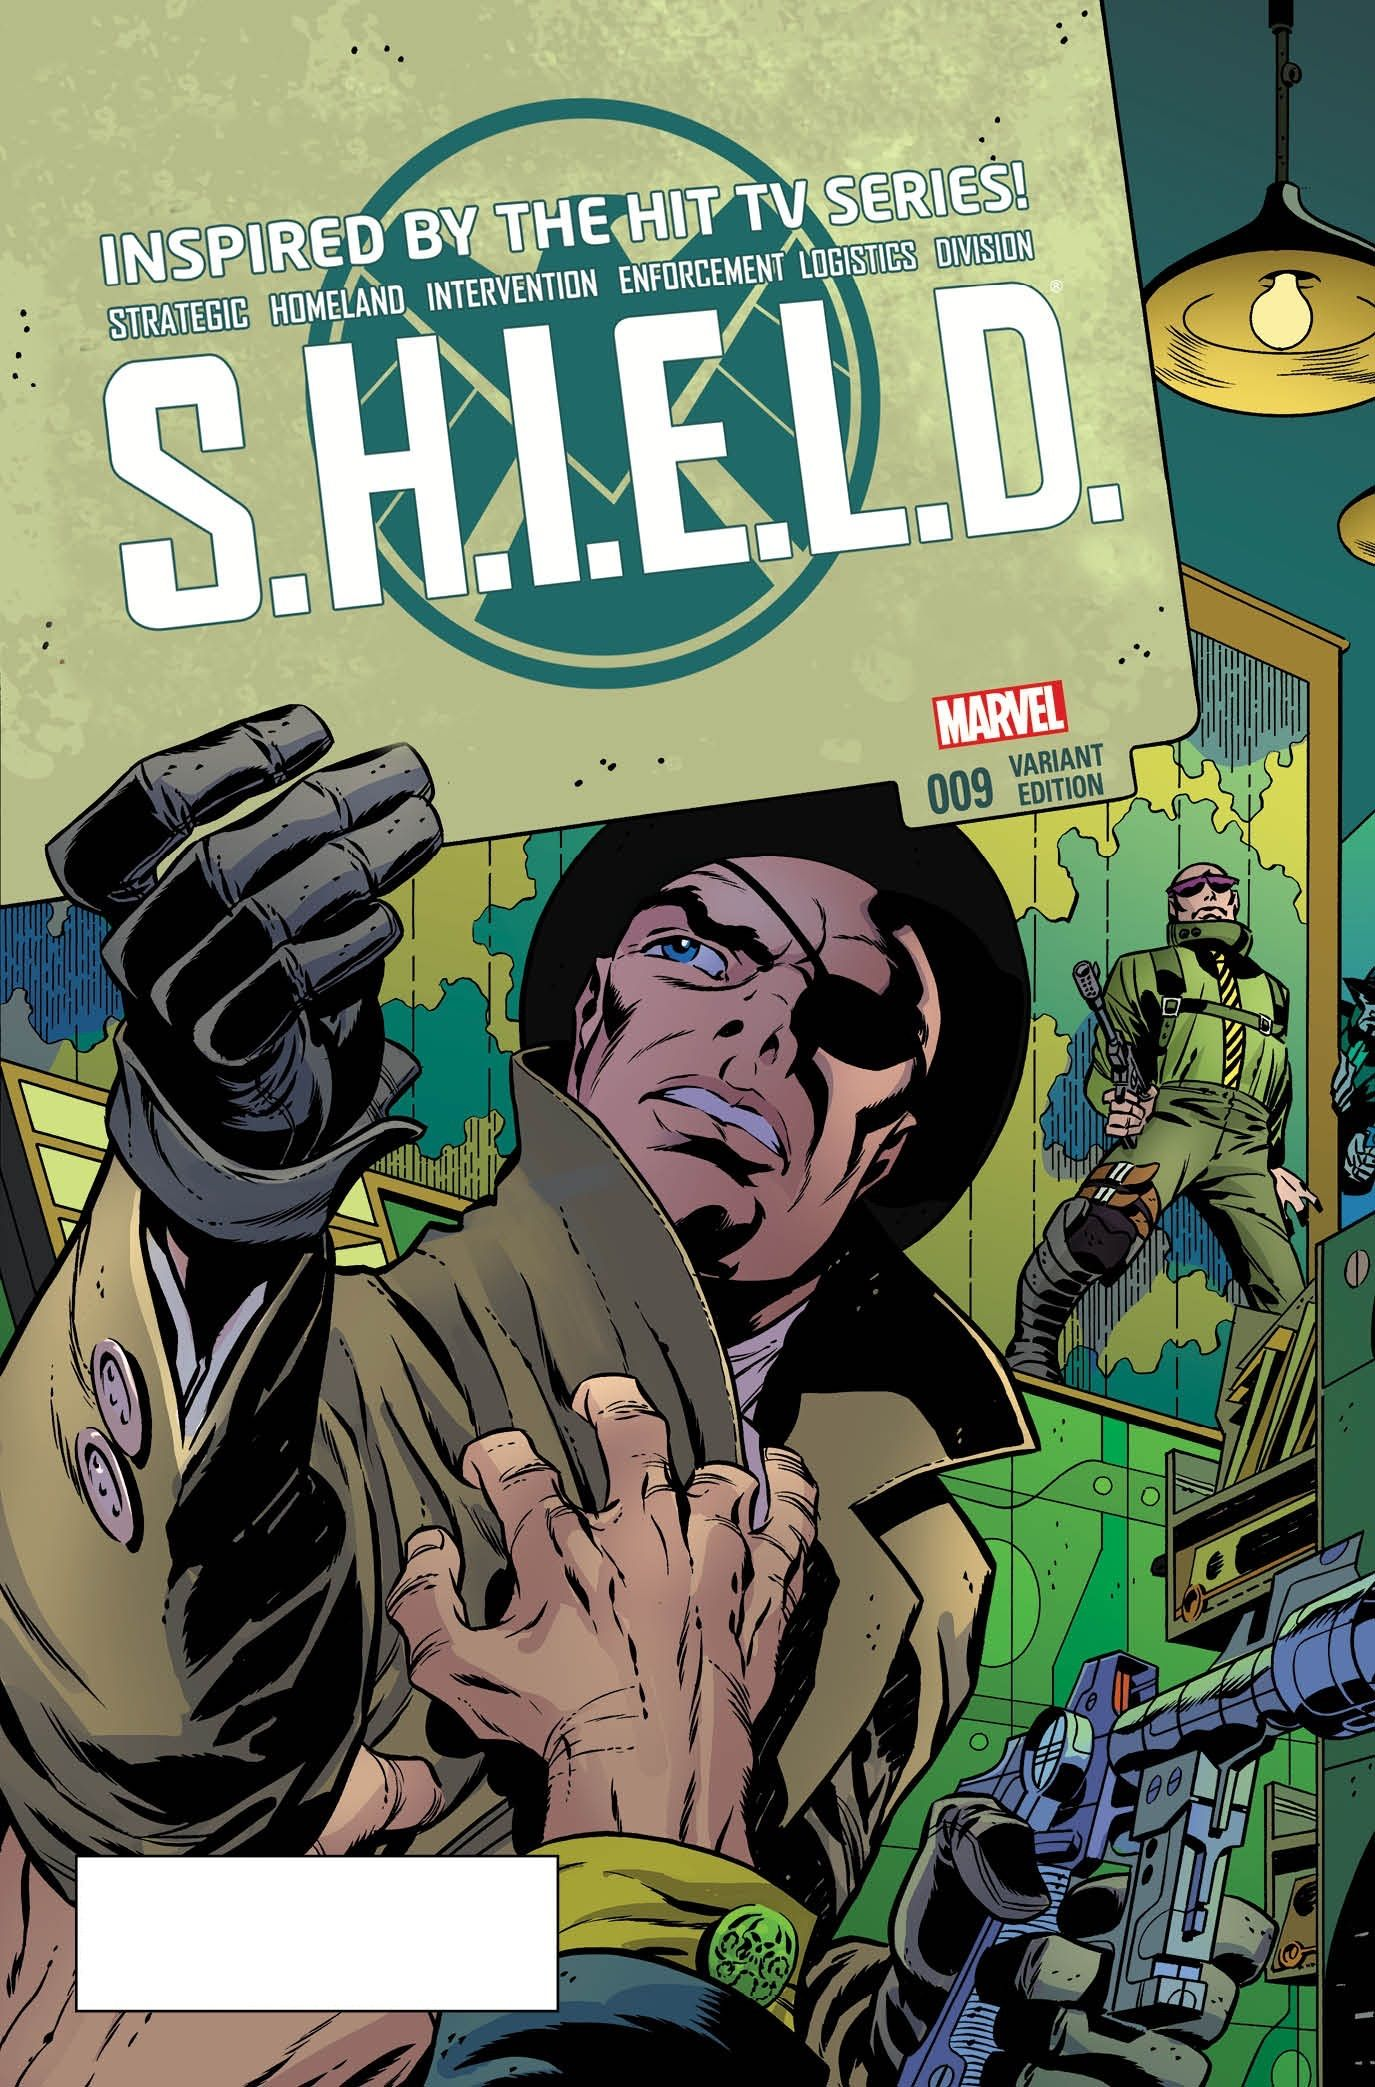 Celebrate 50 Years of S.H.I.E.L.D. – Your New Look at S.H.I.E.L.D. #9!, This August, celebrate a half century of Marvel's premier intelligence agency in one colossal issue! Today, Marvel is pleased to present your new lo...,  #AlEwing #ArtAdams #HowlingCommandos #JackKirby #JimSteranko #JulianTotinoTedesco #LeeFerguson #markwaid #MarvelComics #News #PressRelease #S.H.I.E.L.D. #S.H.I.E.L.D.#9 #StanLee #StefanoCaselli